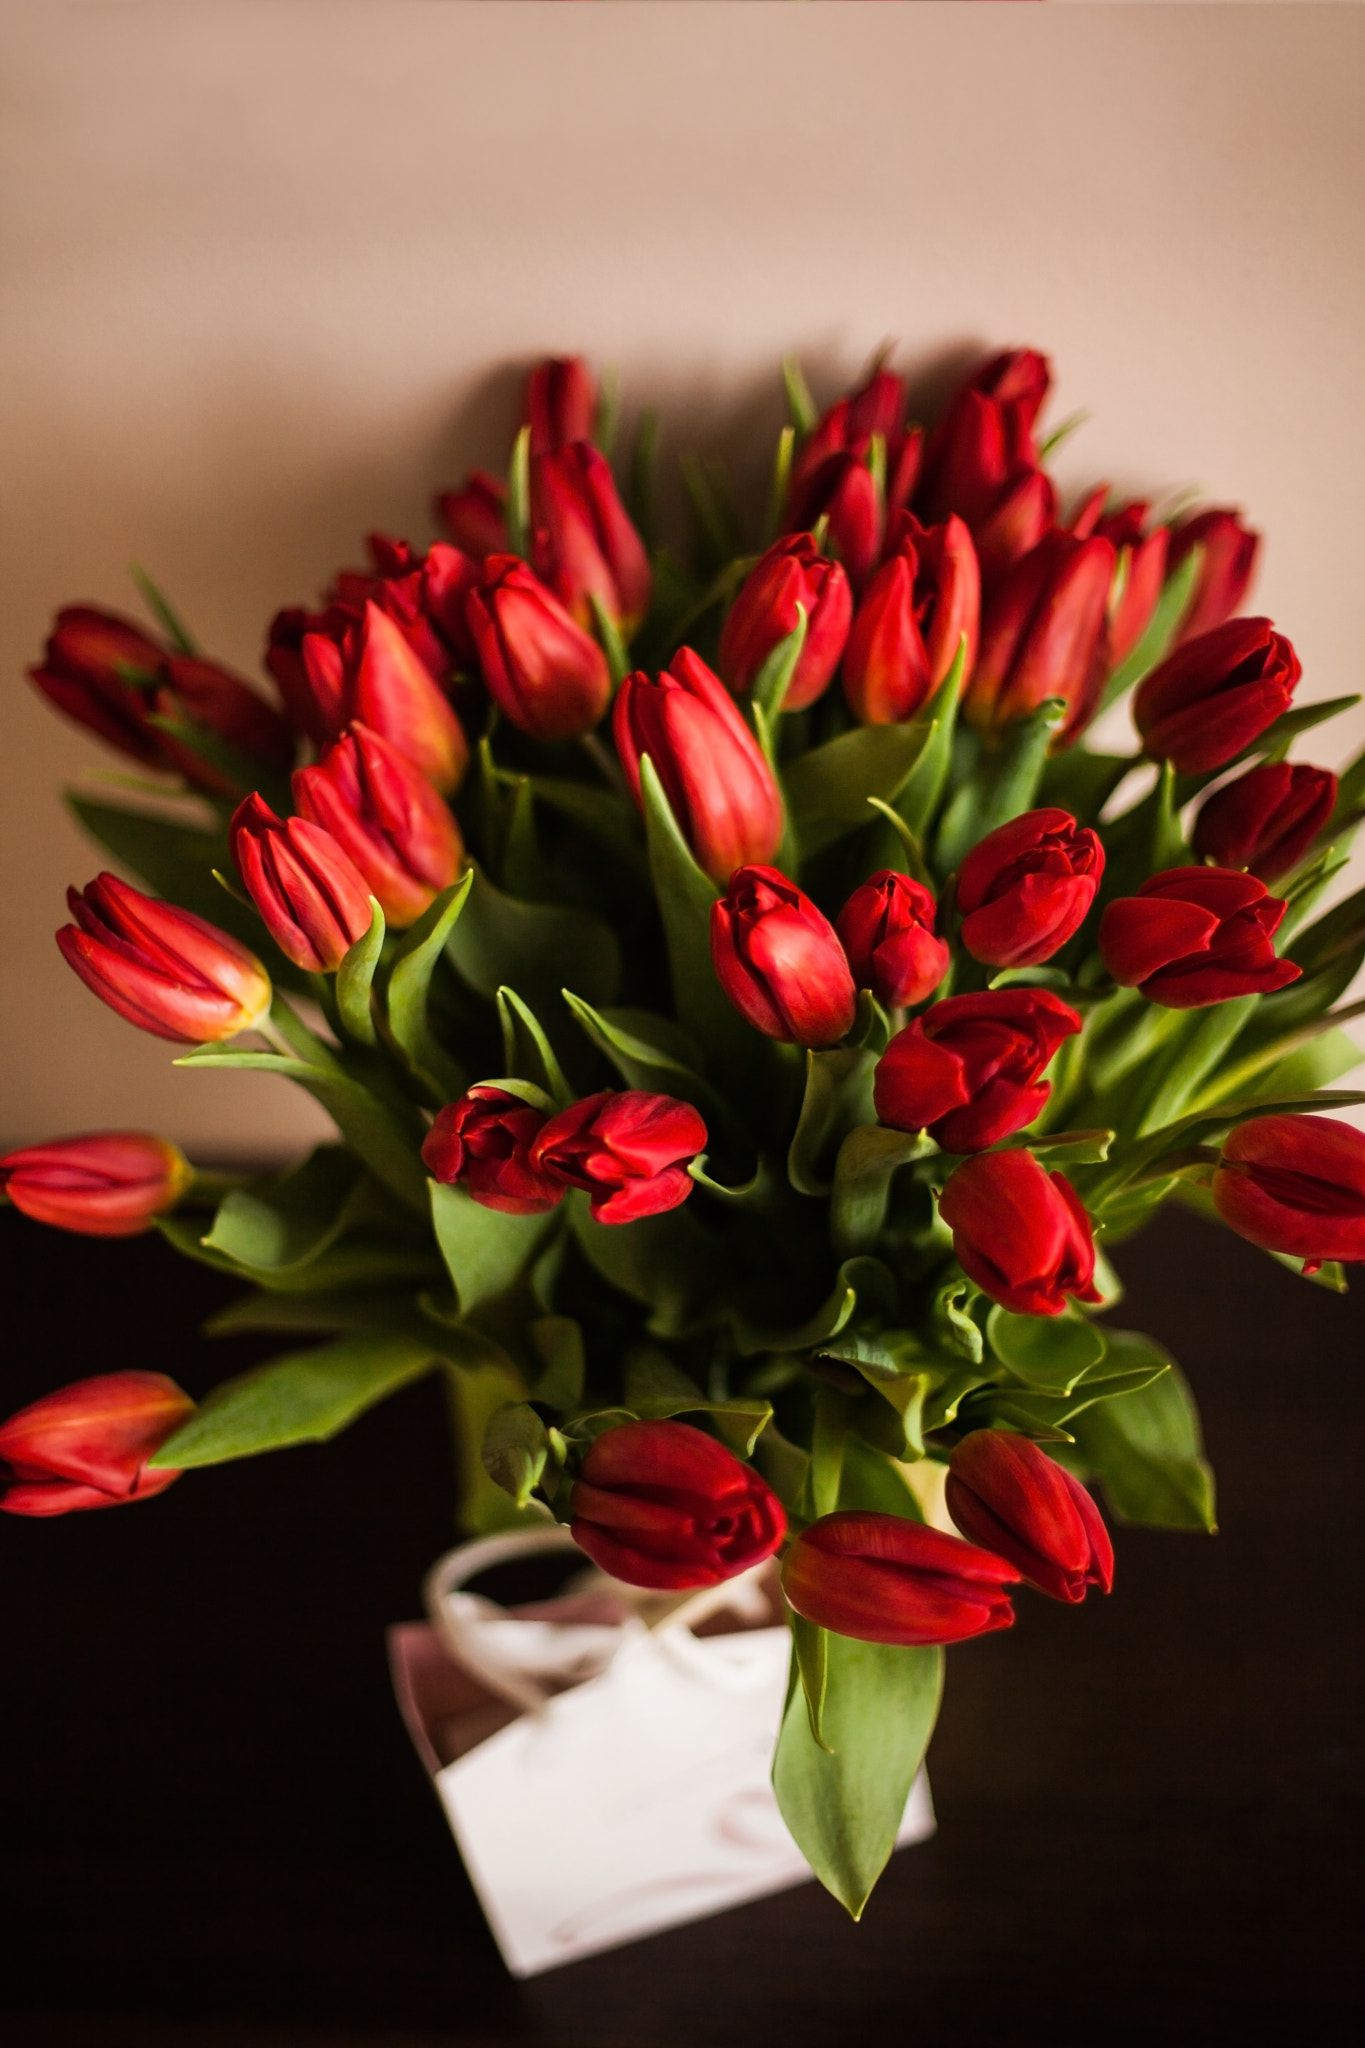 Bouquet Of Red Tulips Spring Flowers Bouquet Of Red Tulips On Brown Wooden Background Mother S Day And Va Tulips Flowers Red Tulips Bouquet Amazing Flowers